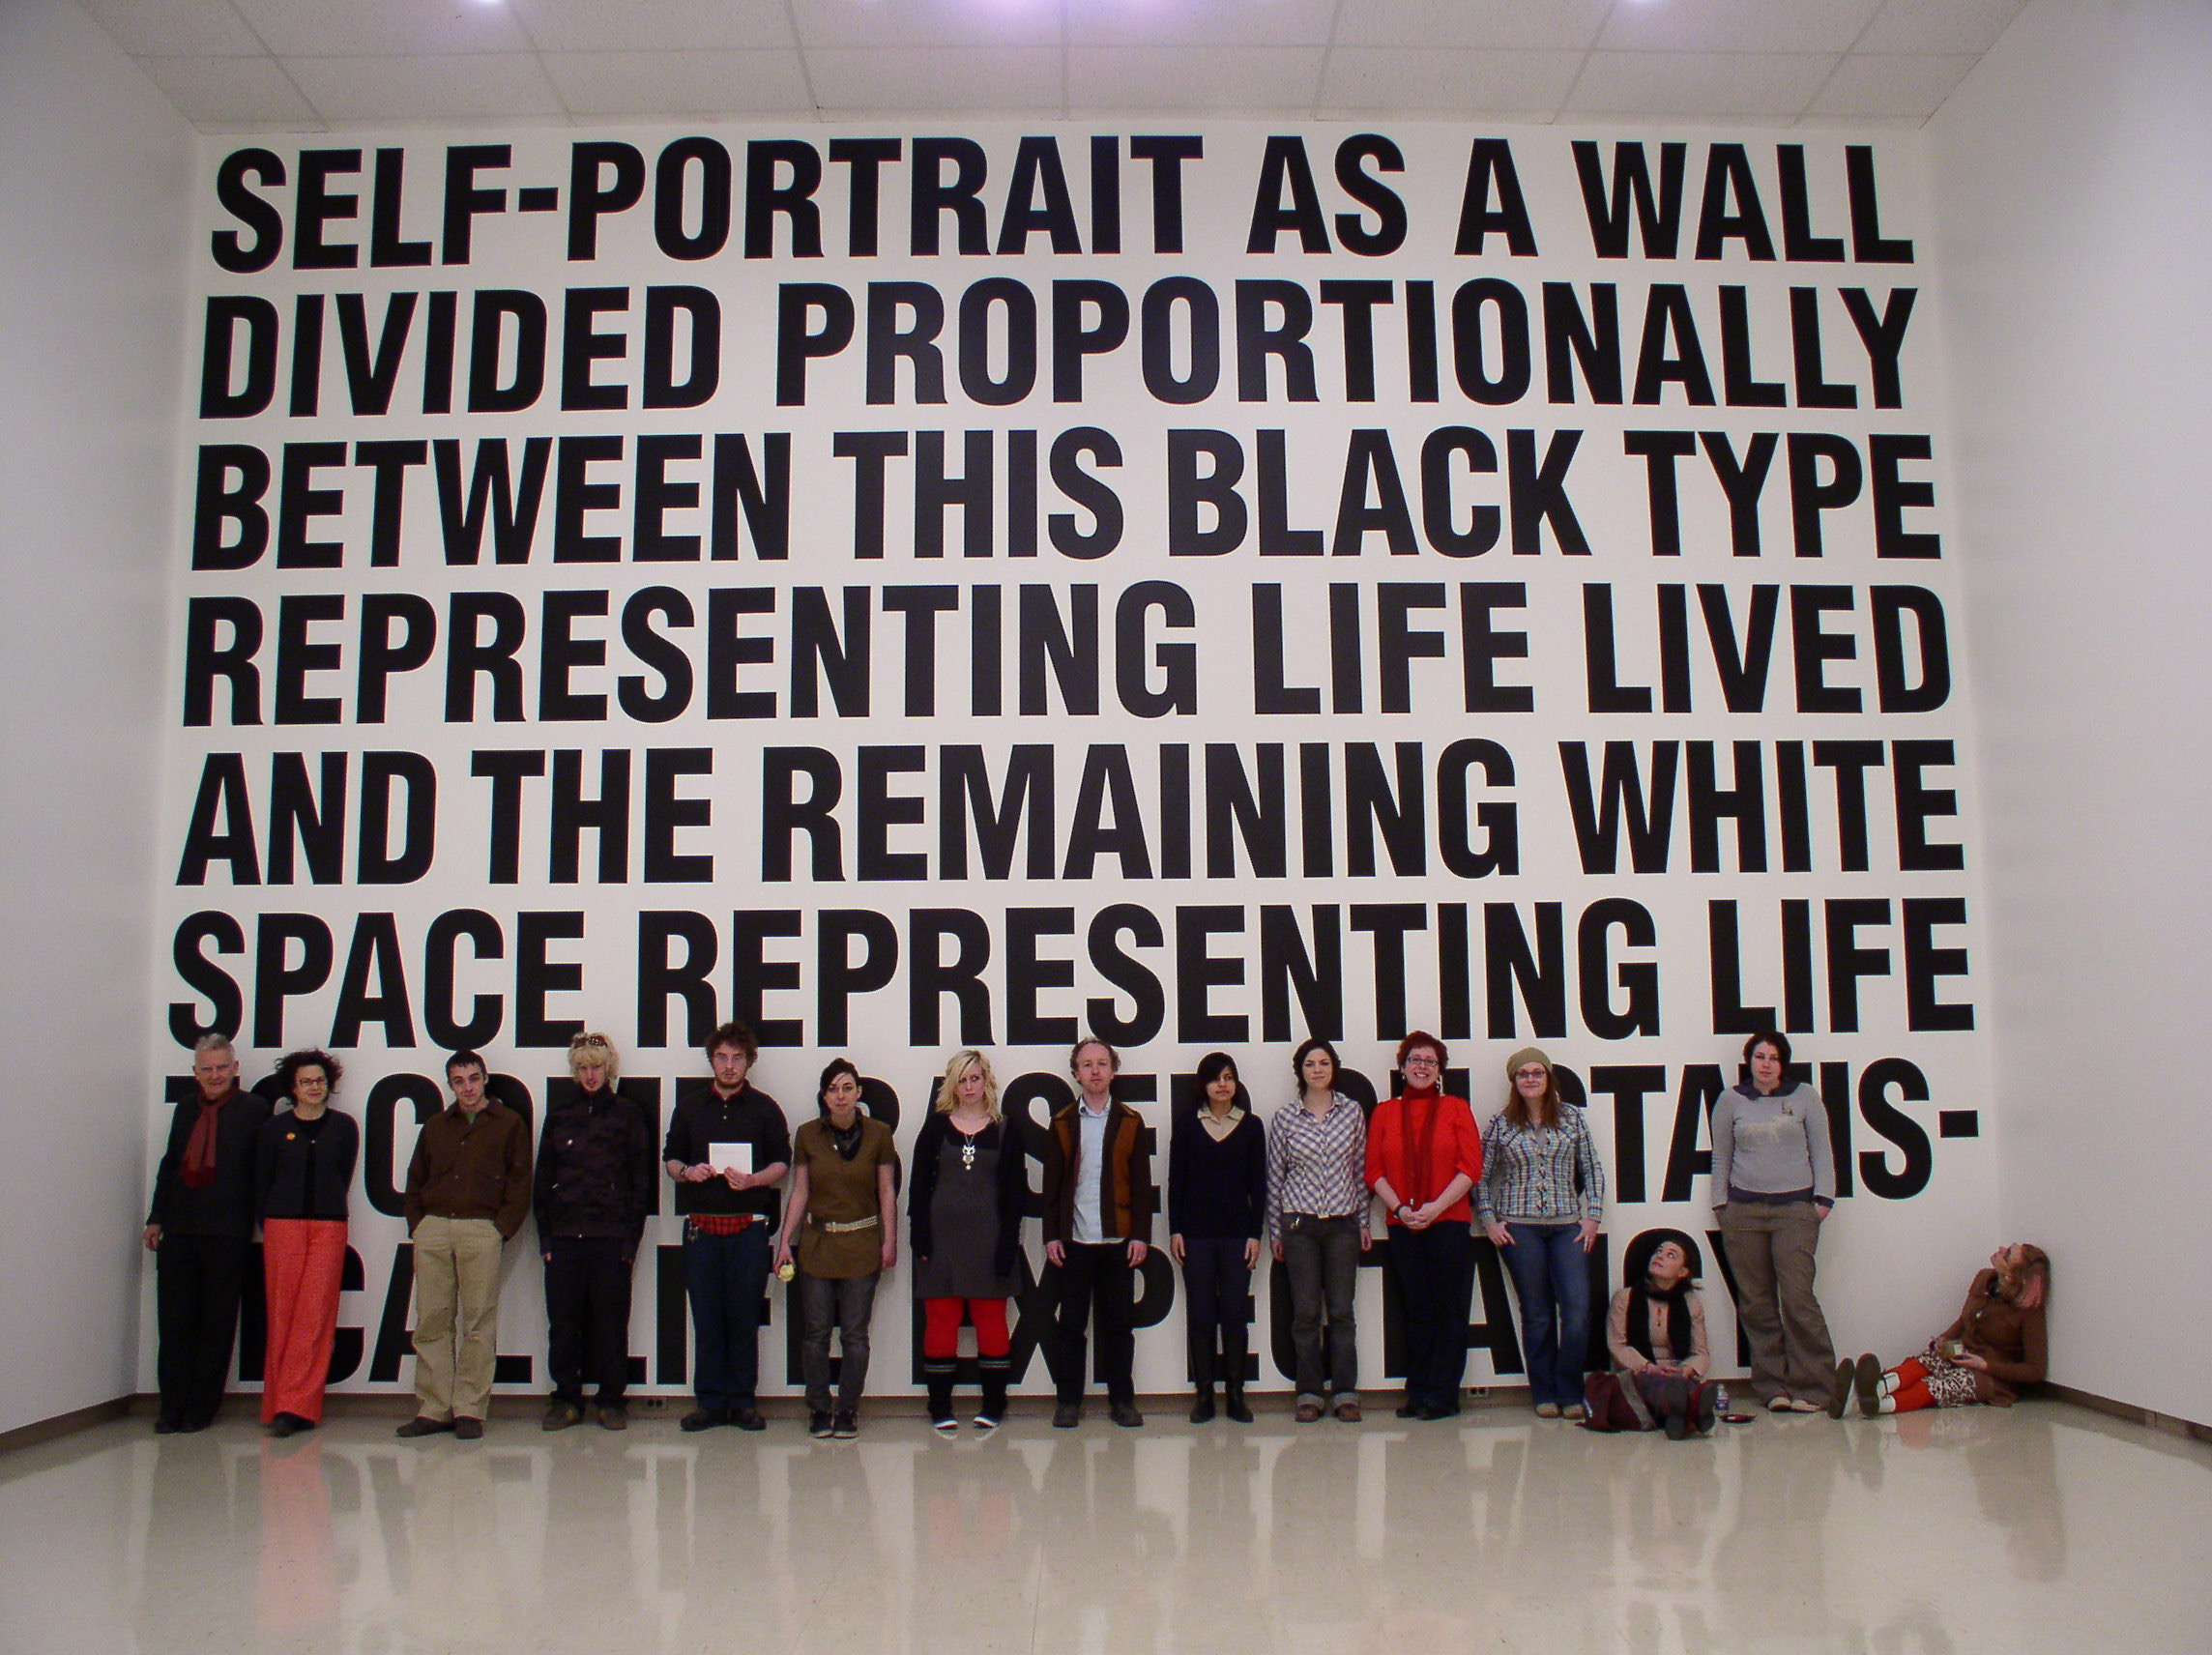 """In a large gallery space, a group of students line a wall. They are partially covering the last two lines of a text-based artwork that fills the wall from the floor to ceiling. The text set in bold, black capital letters and reads """"Self-portrait as a wall divided proportionally between this black type representing life lived and the remaining white space representing life to some based on statistical life expectancy."""""""